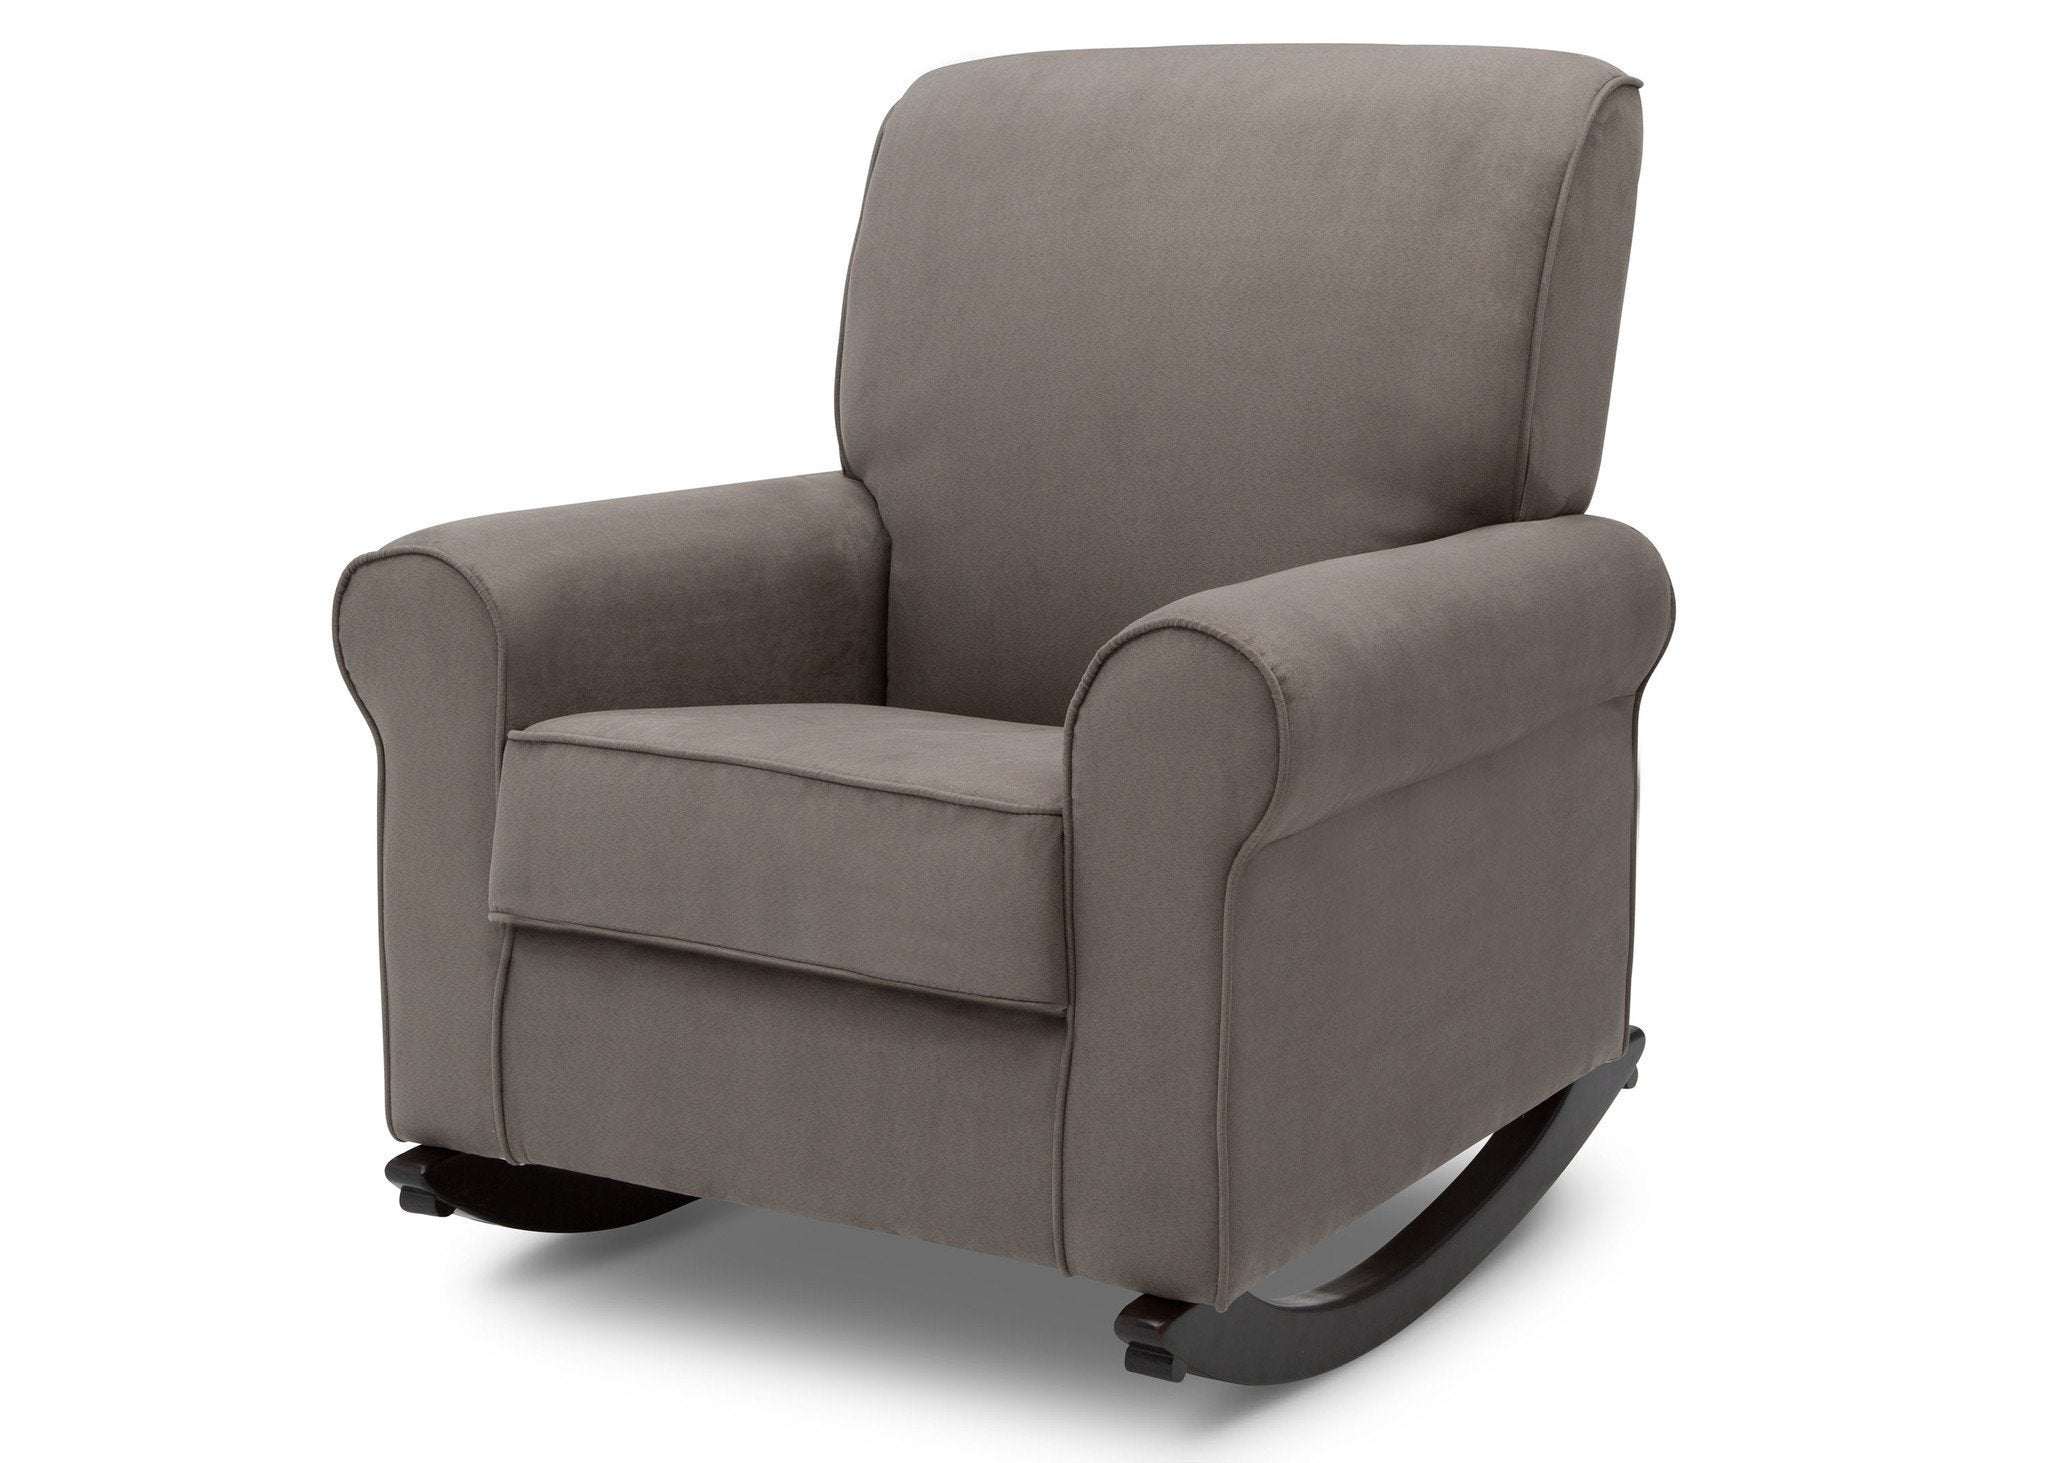 Delta Children Graphite (018) Rowen Nursery Rocking Chair, left side view, a4a